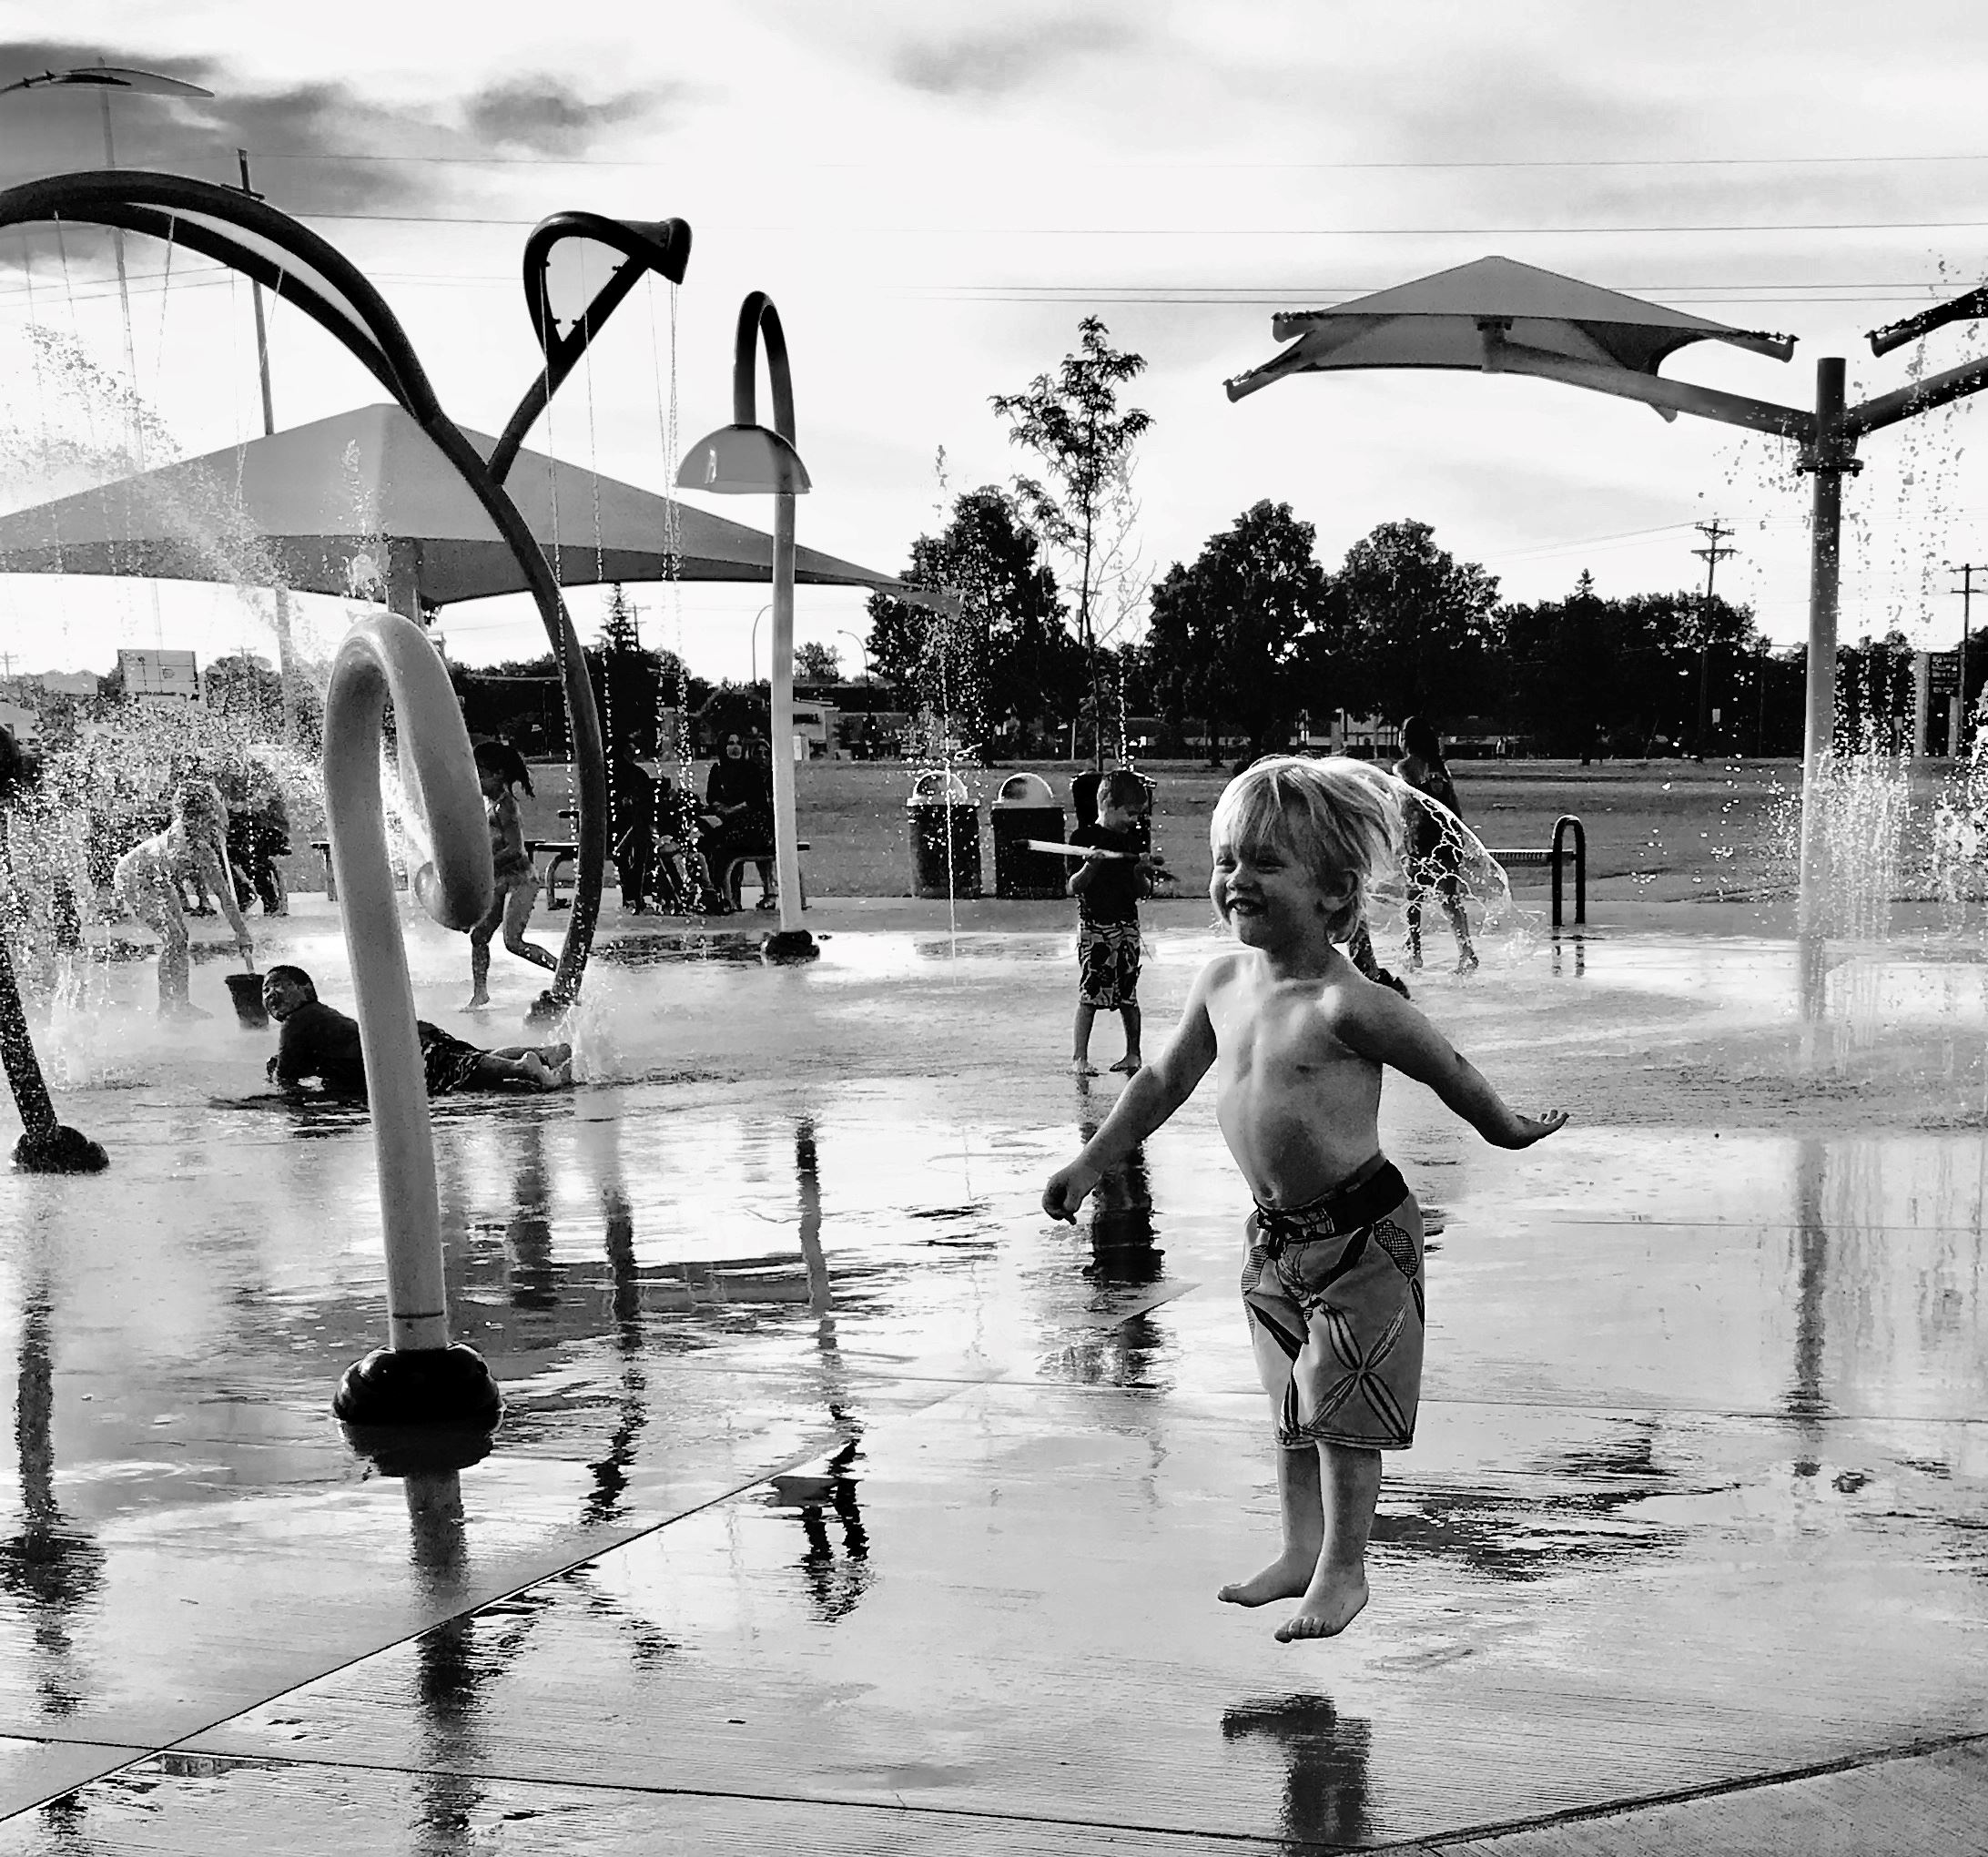 Little Boy in mid-air jumping around the splash pad